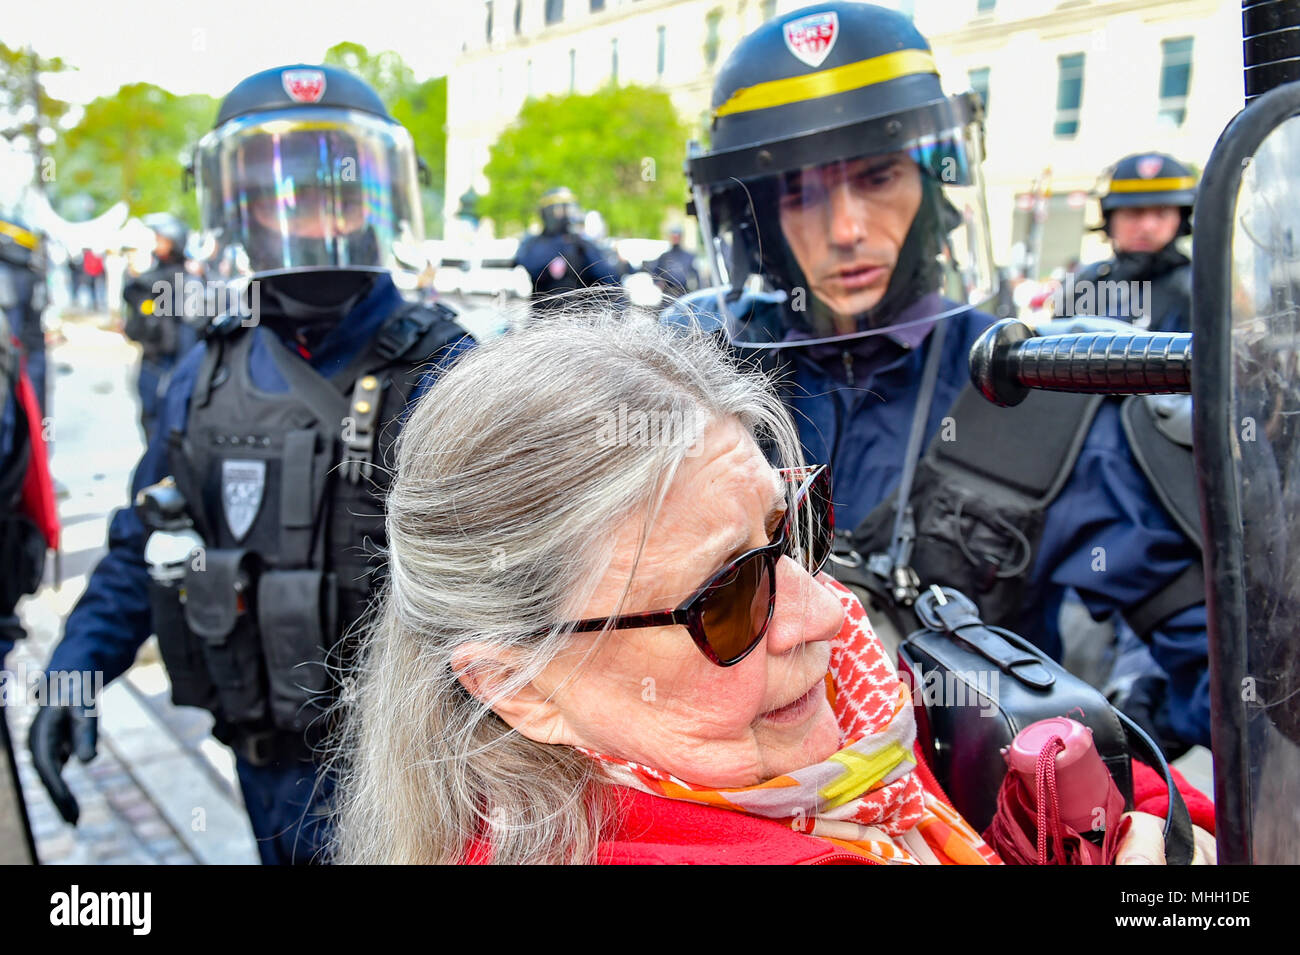 Paris, France. 1st May 2018. Paris police clash with protesters as demonstrations turn violent. PICTURED: A elderly woman is pushed by police. Credit: Peter Manning/Alamy Live News Stock Photo